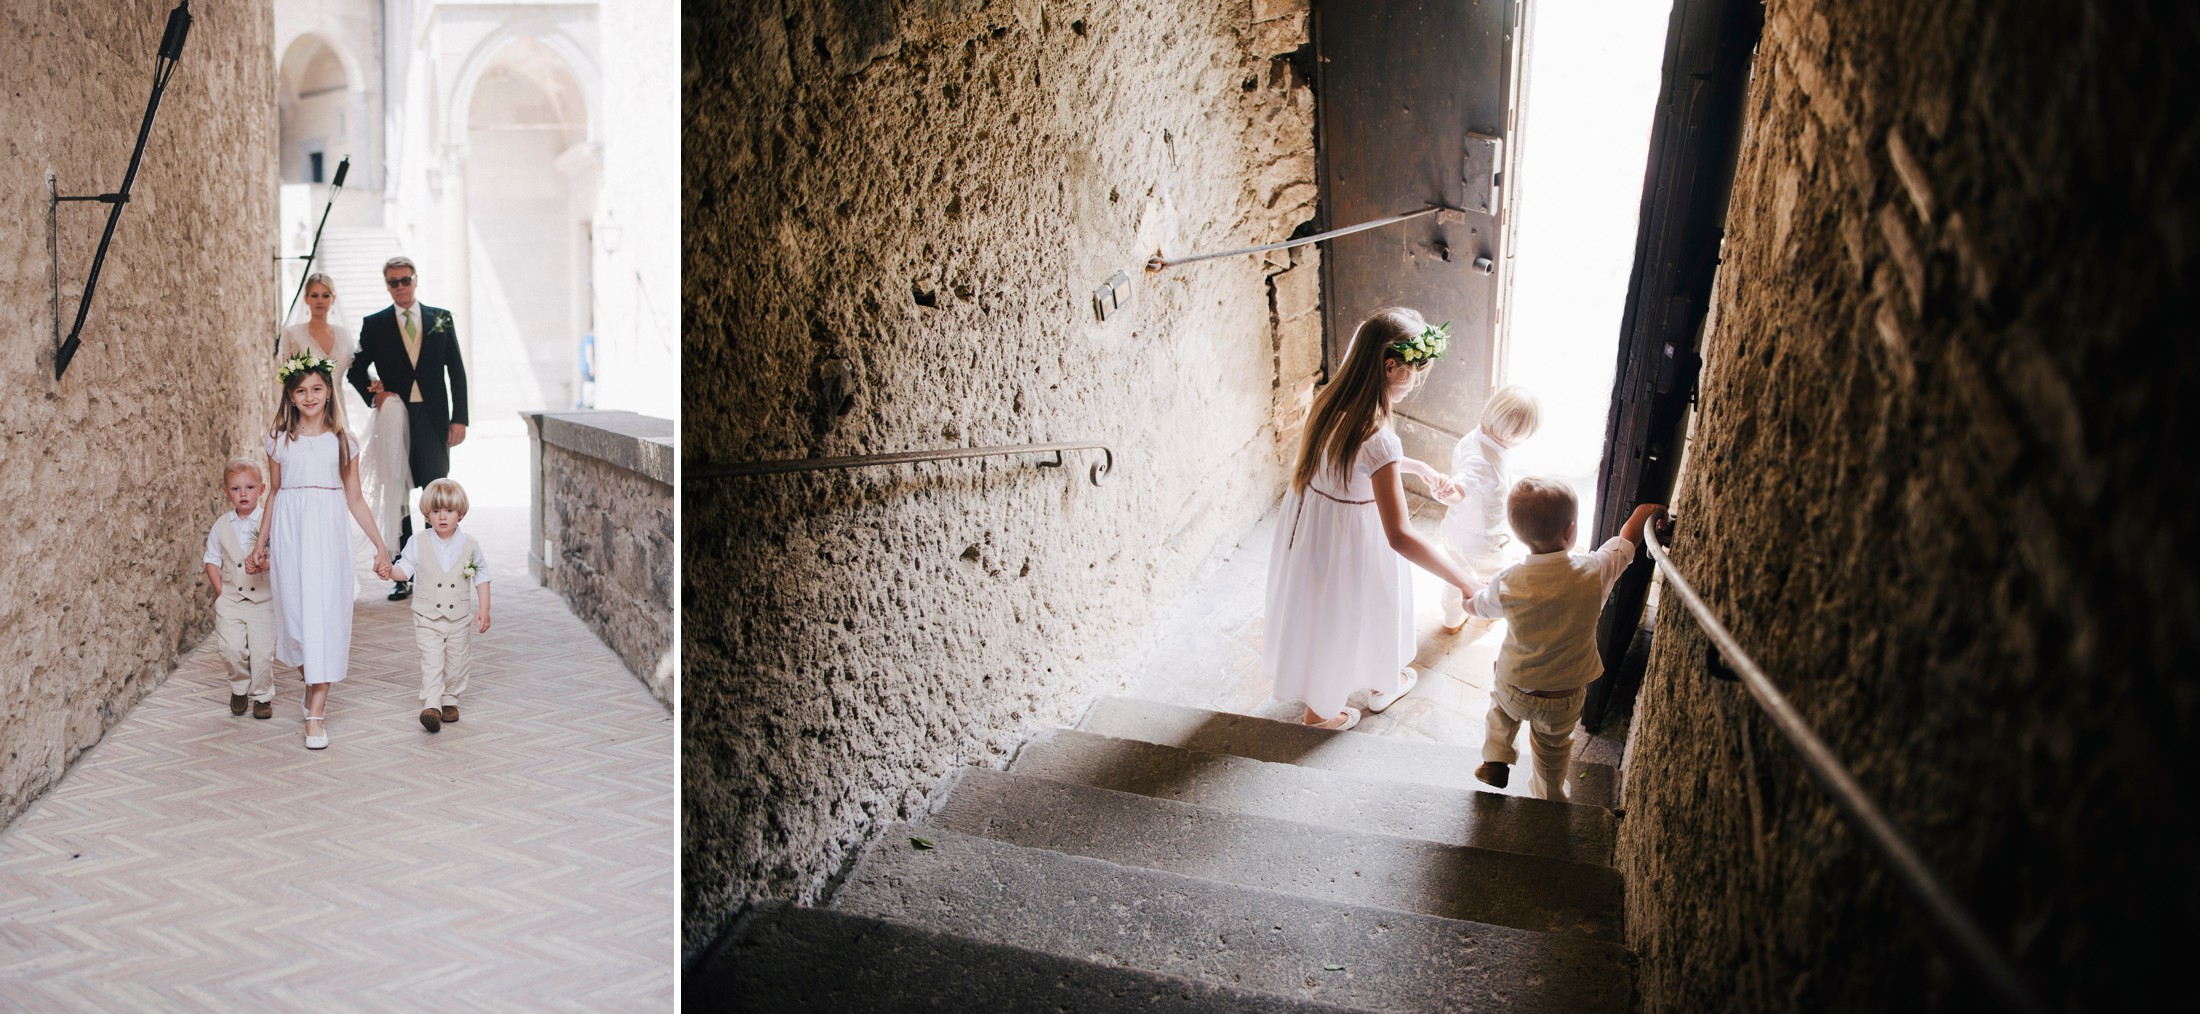 wedding in rome collage the bride with her father going to the ceremony flower girl and boy